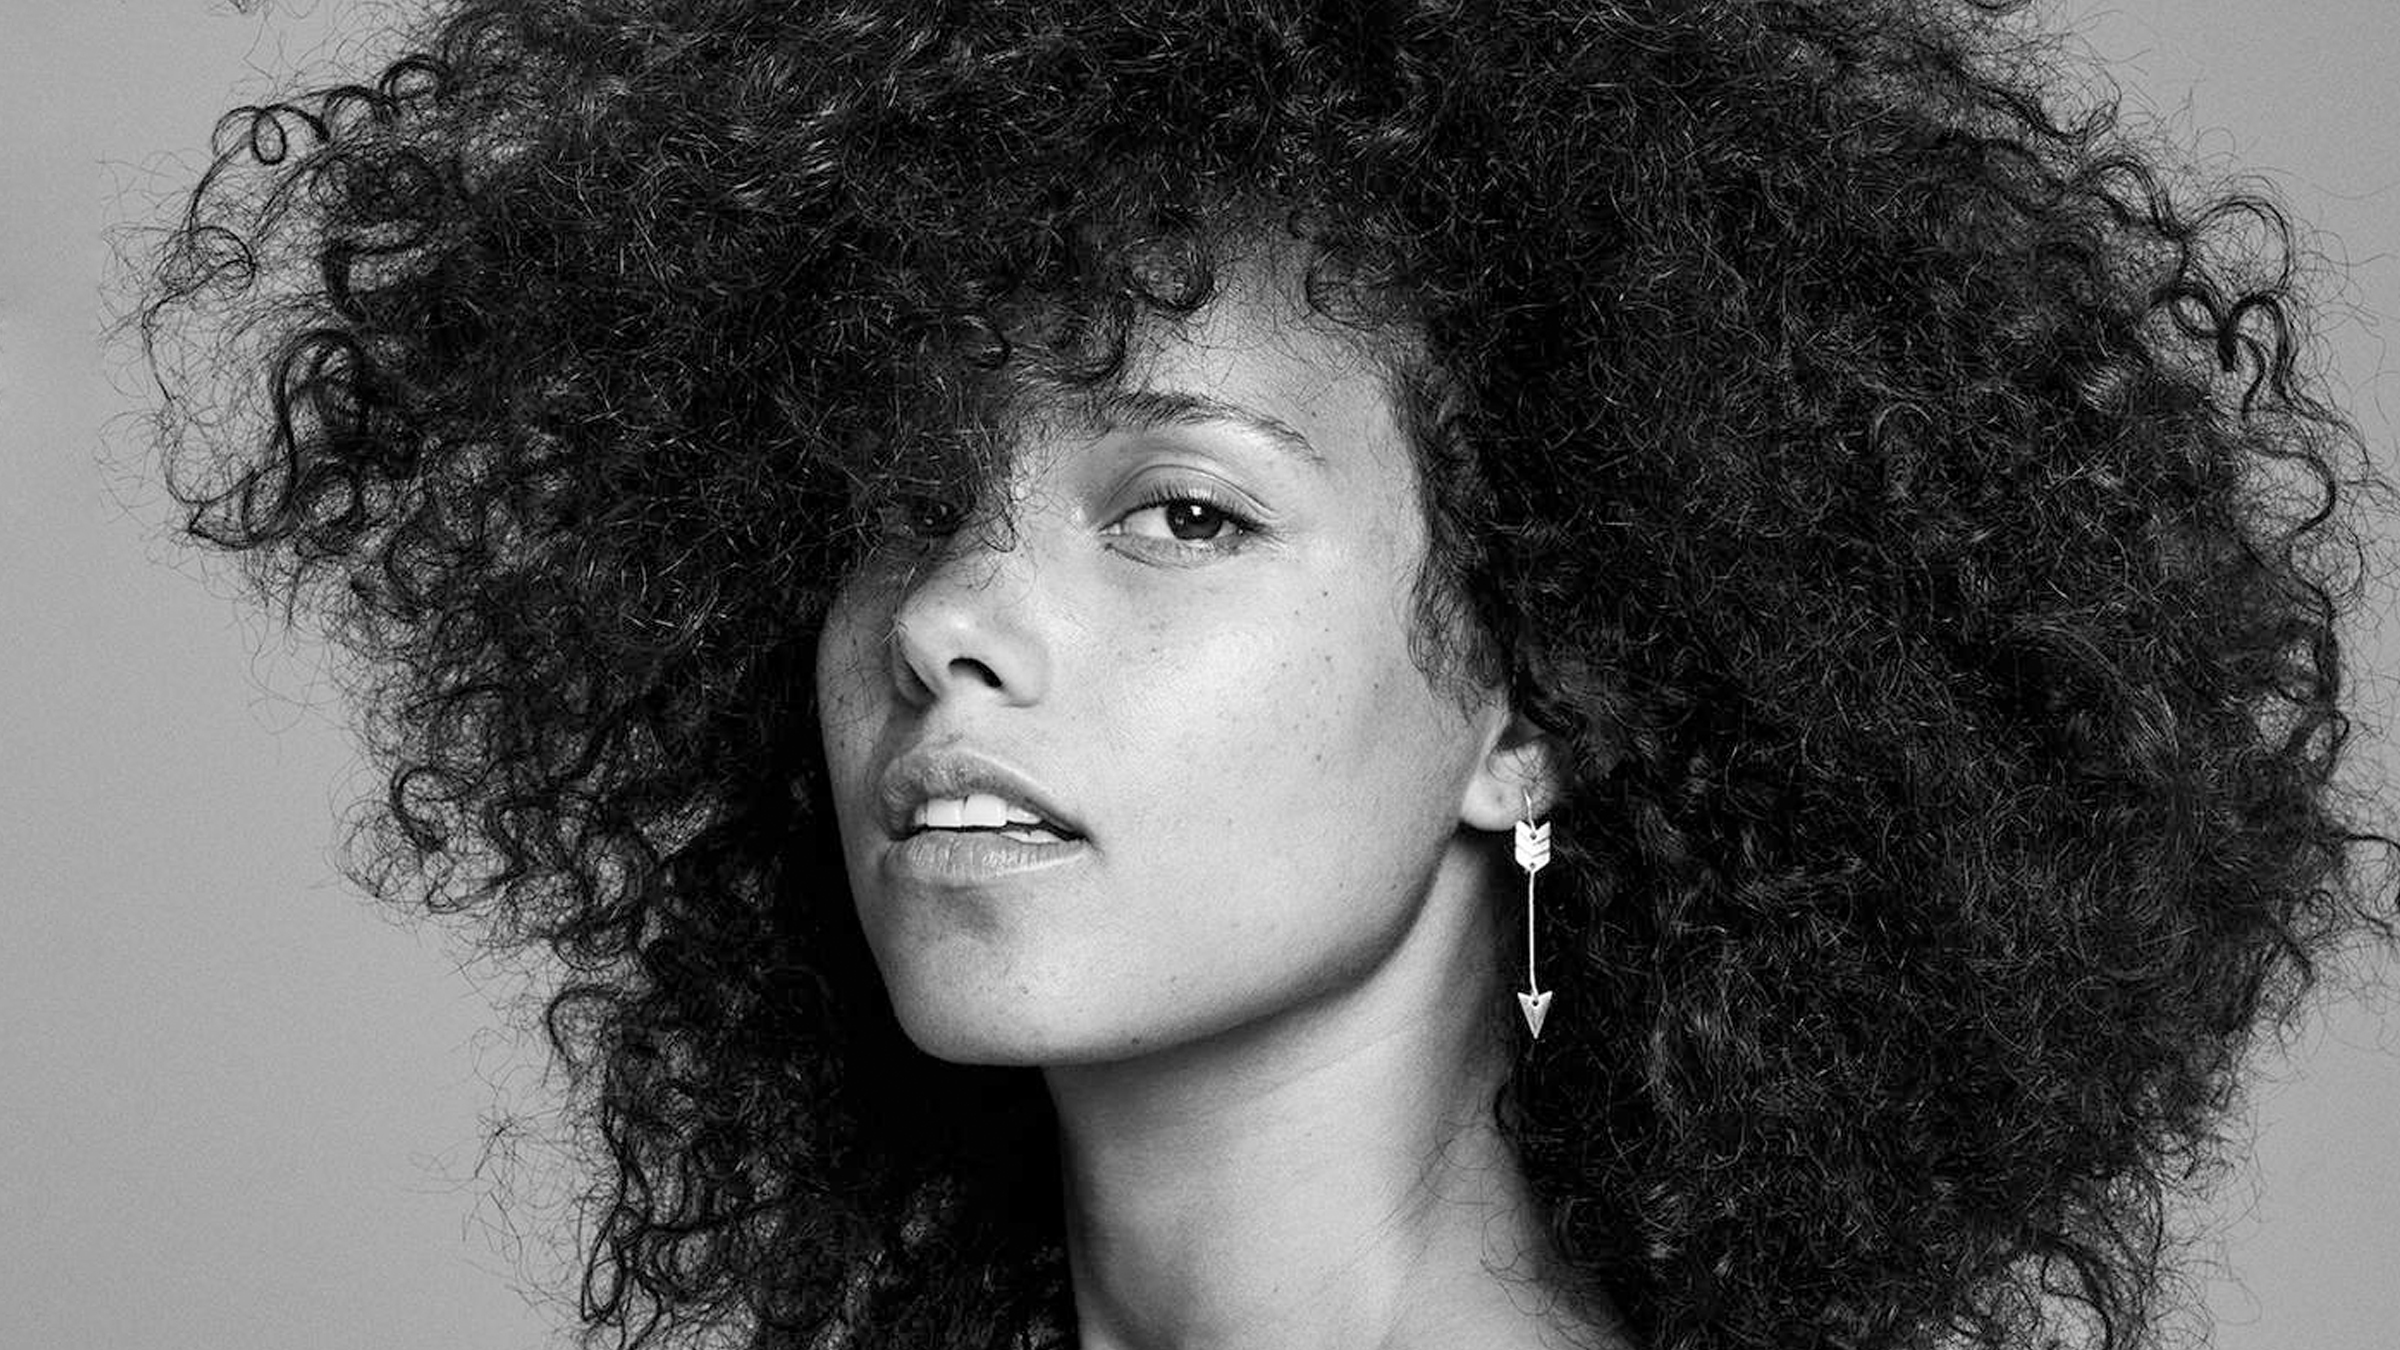 Teaser alicia keys